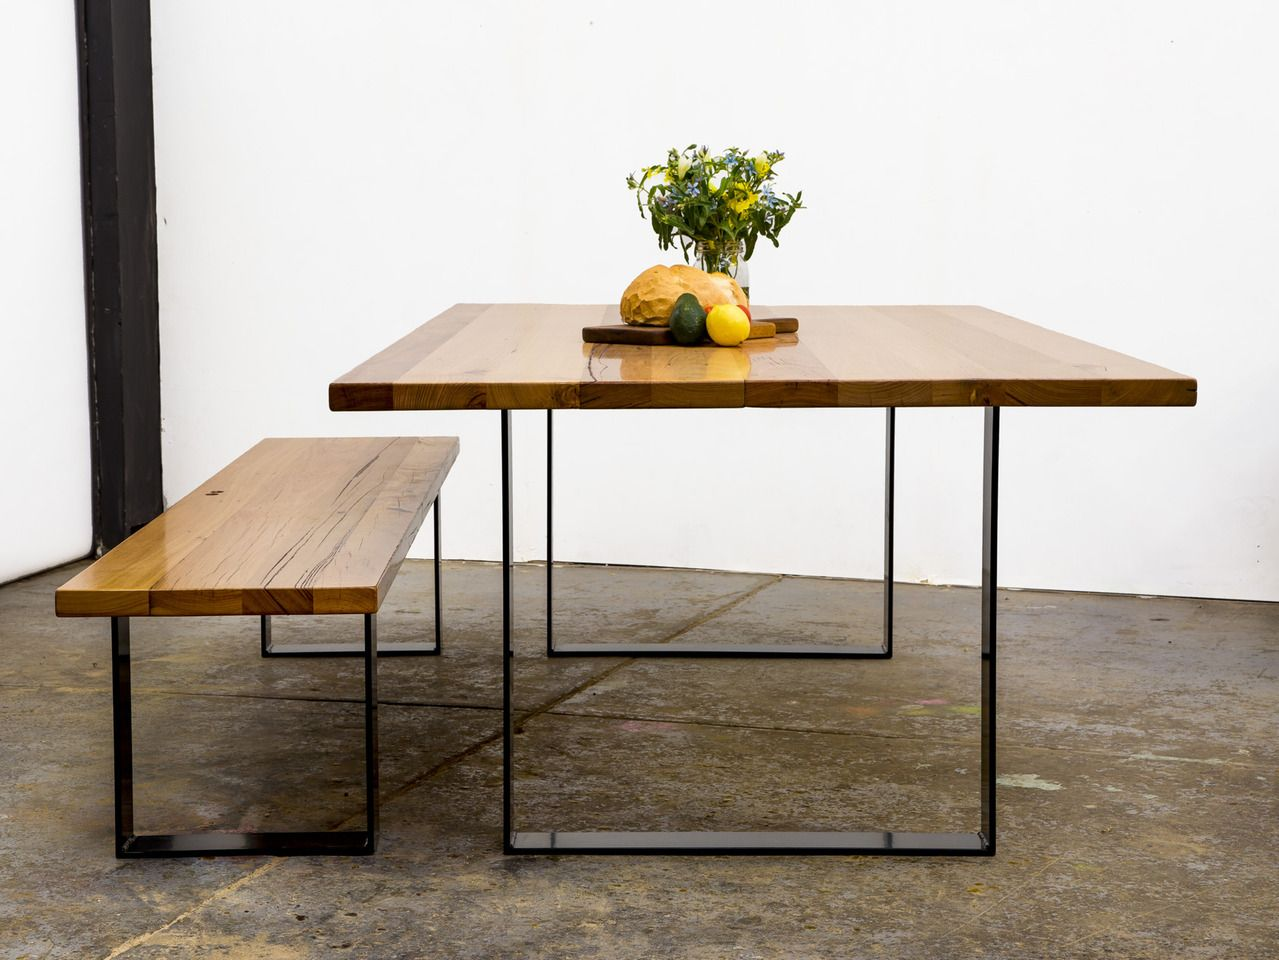 get 20 square tables ideas on pinterest without signing up